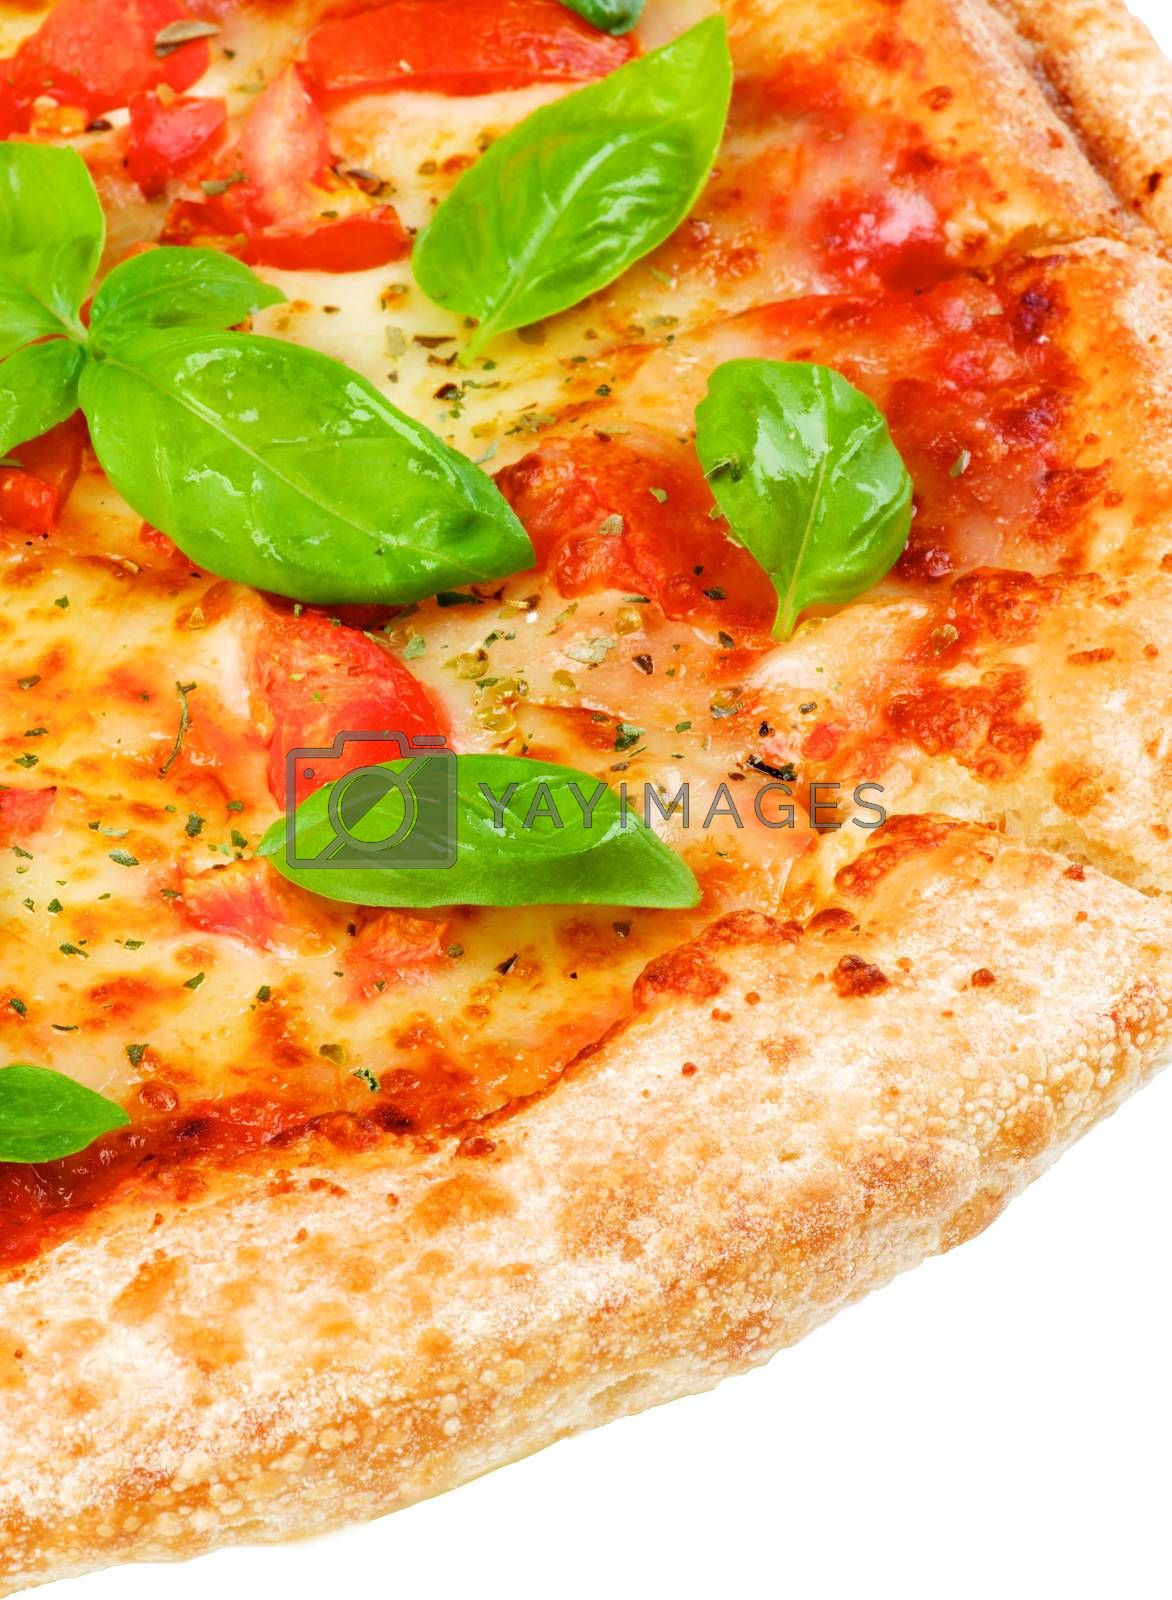 Slice of Freshly Baked Homemade Margherita Pizza with Tomatoes, Cheese and Basil Leafs isolated on White background